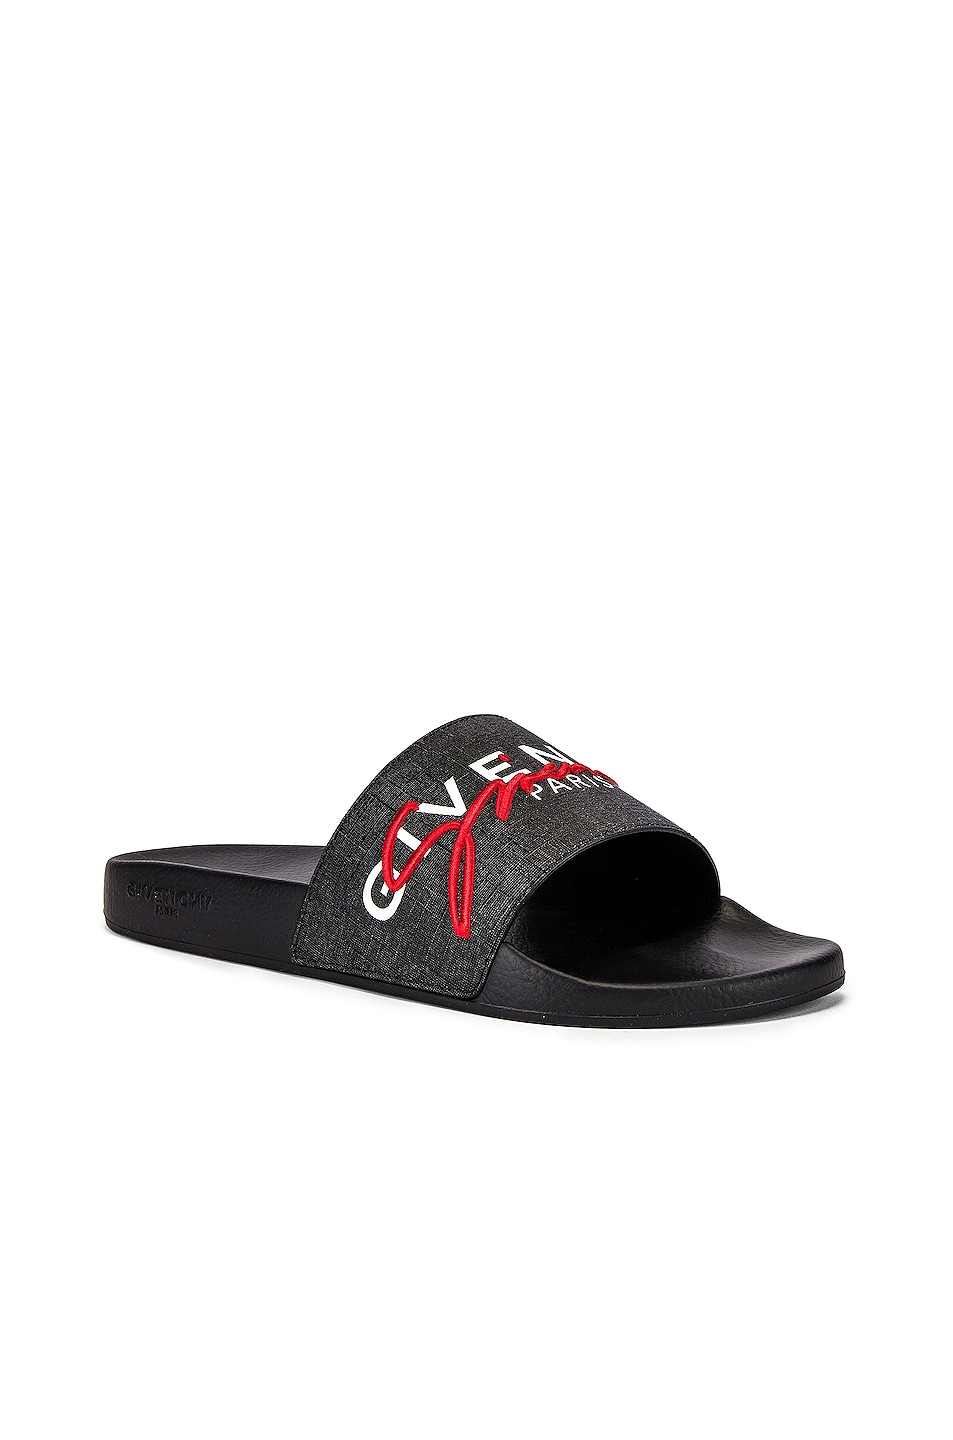 Image 1 of Givenchy Logo Slide in Black & Red